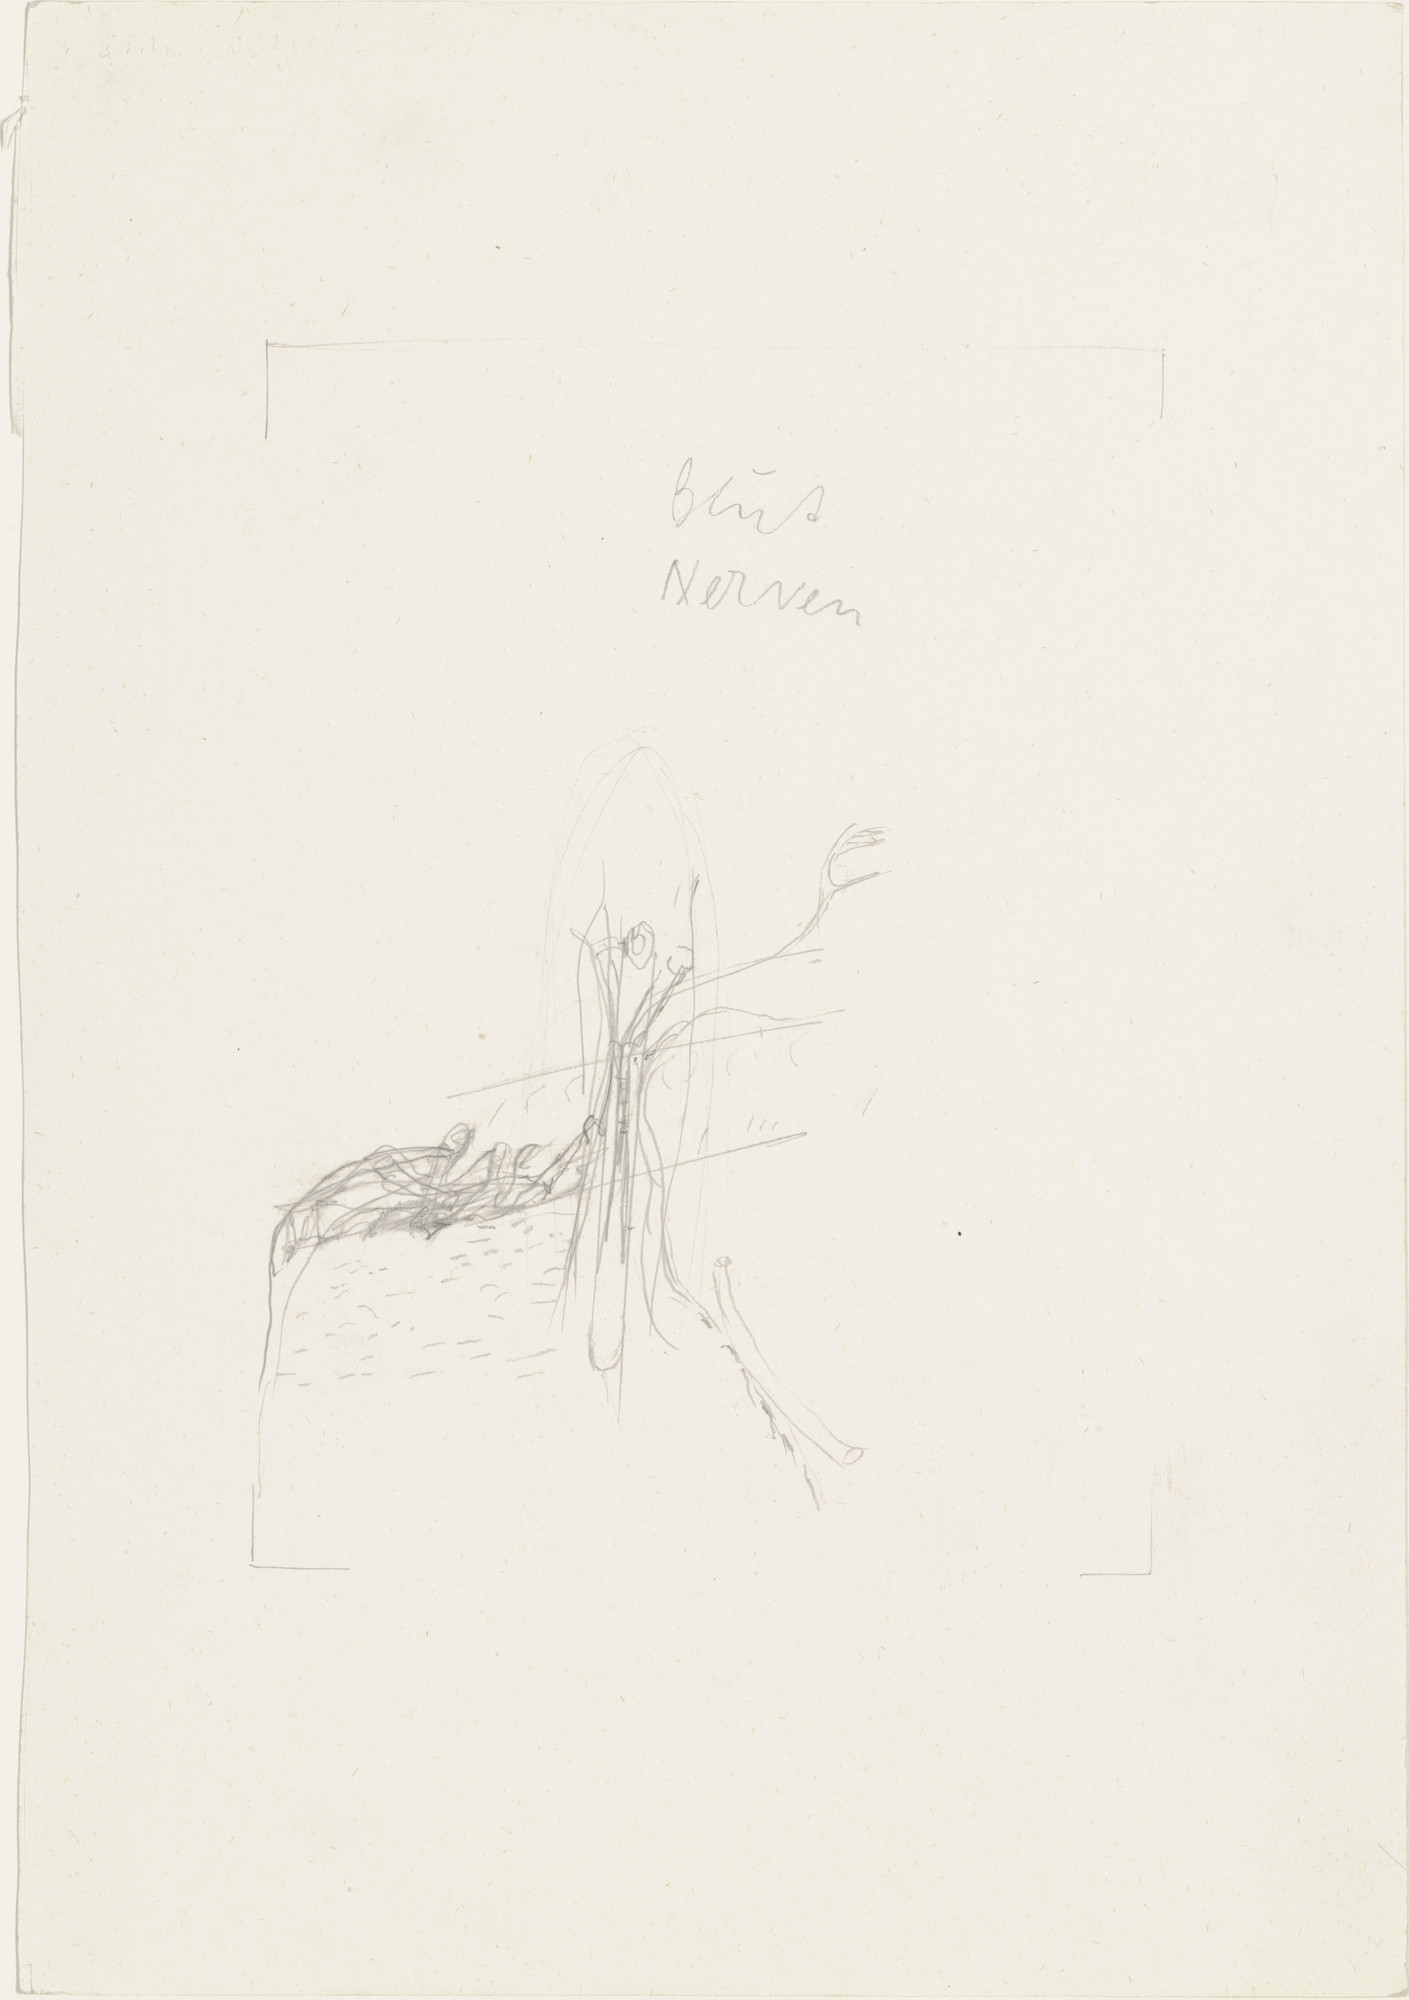 Joseph Beuys. Blood/Nerves (Blut/Nerven). 1974